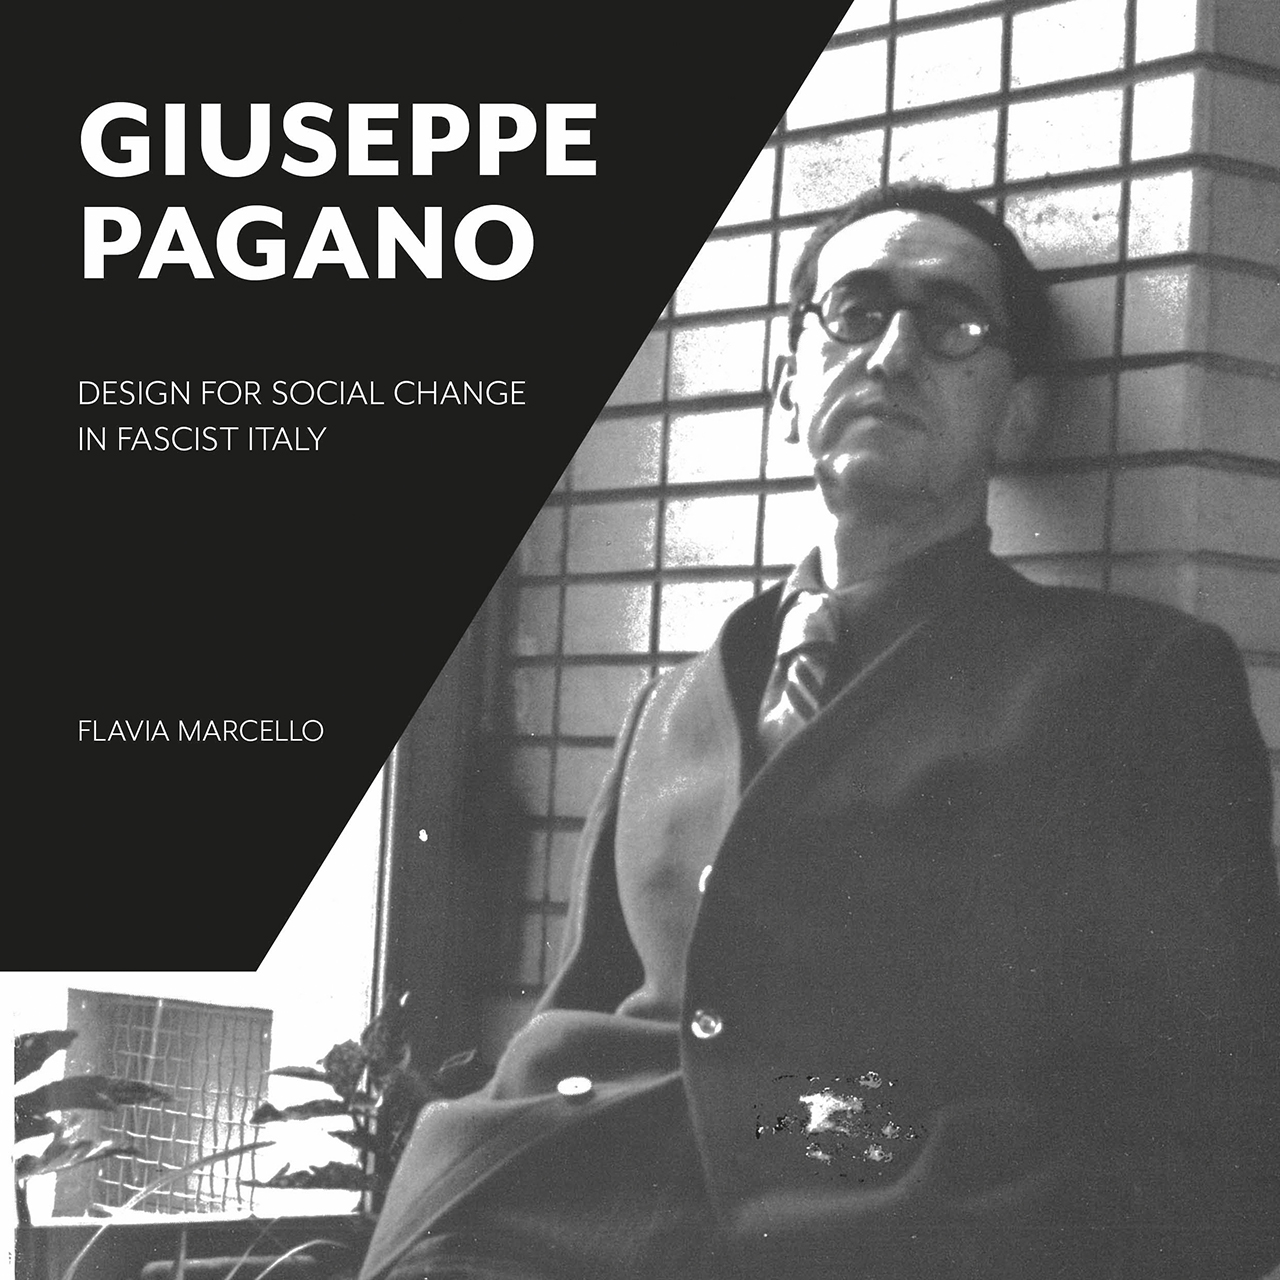 Giuseppe Pagano: Design for Social Change in Fascist Italy